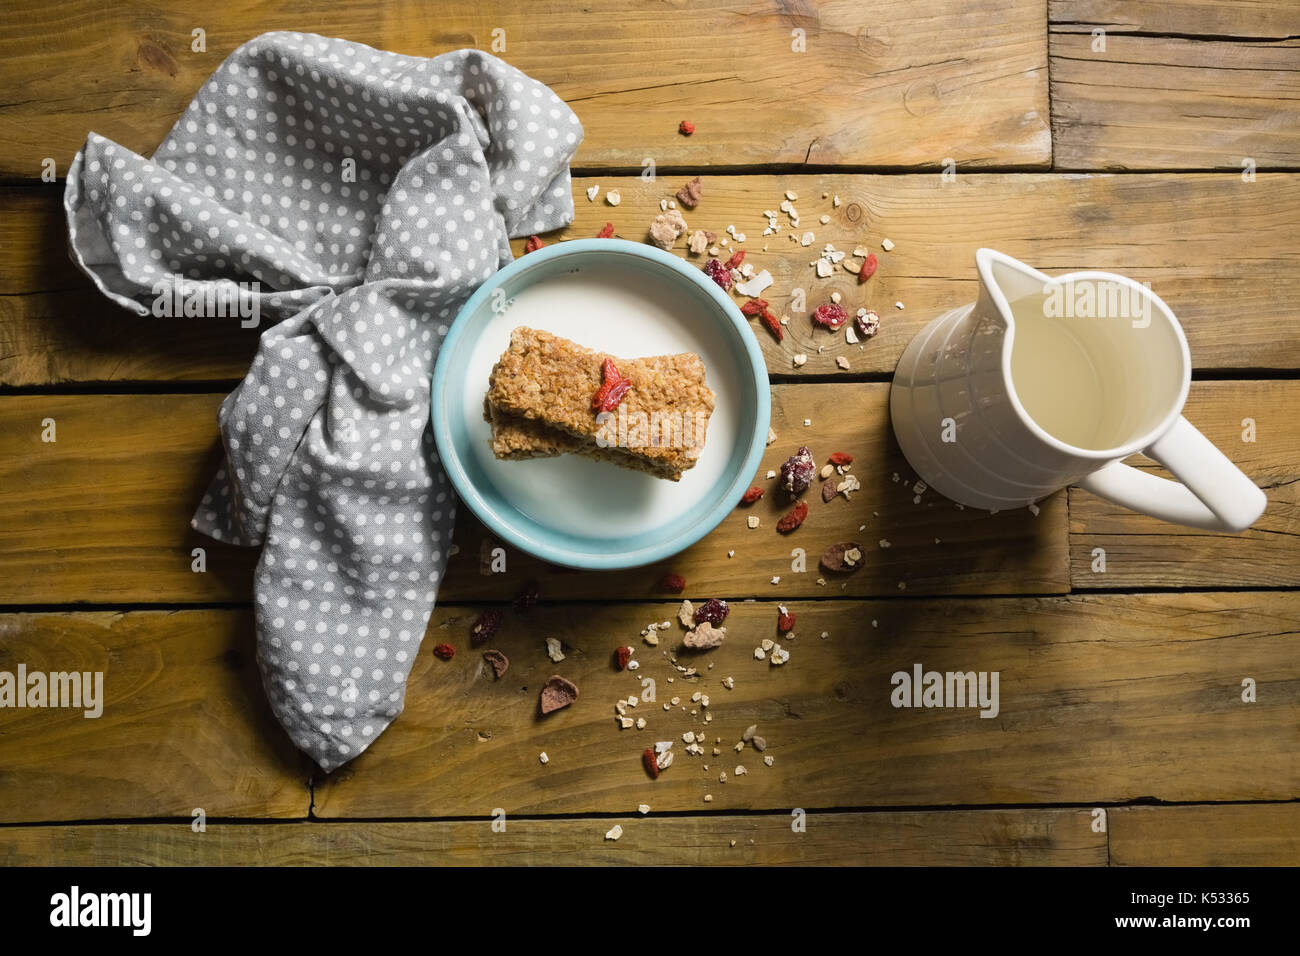 Overhead view of granola bar and milk in bowl - Stock Image